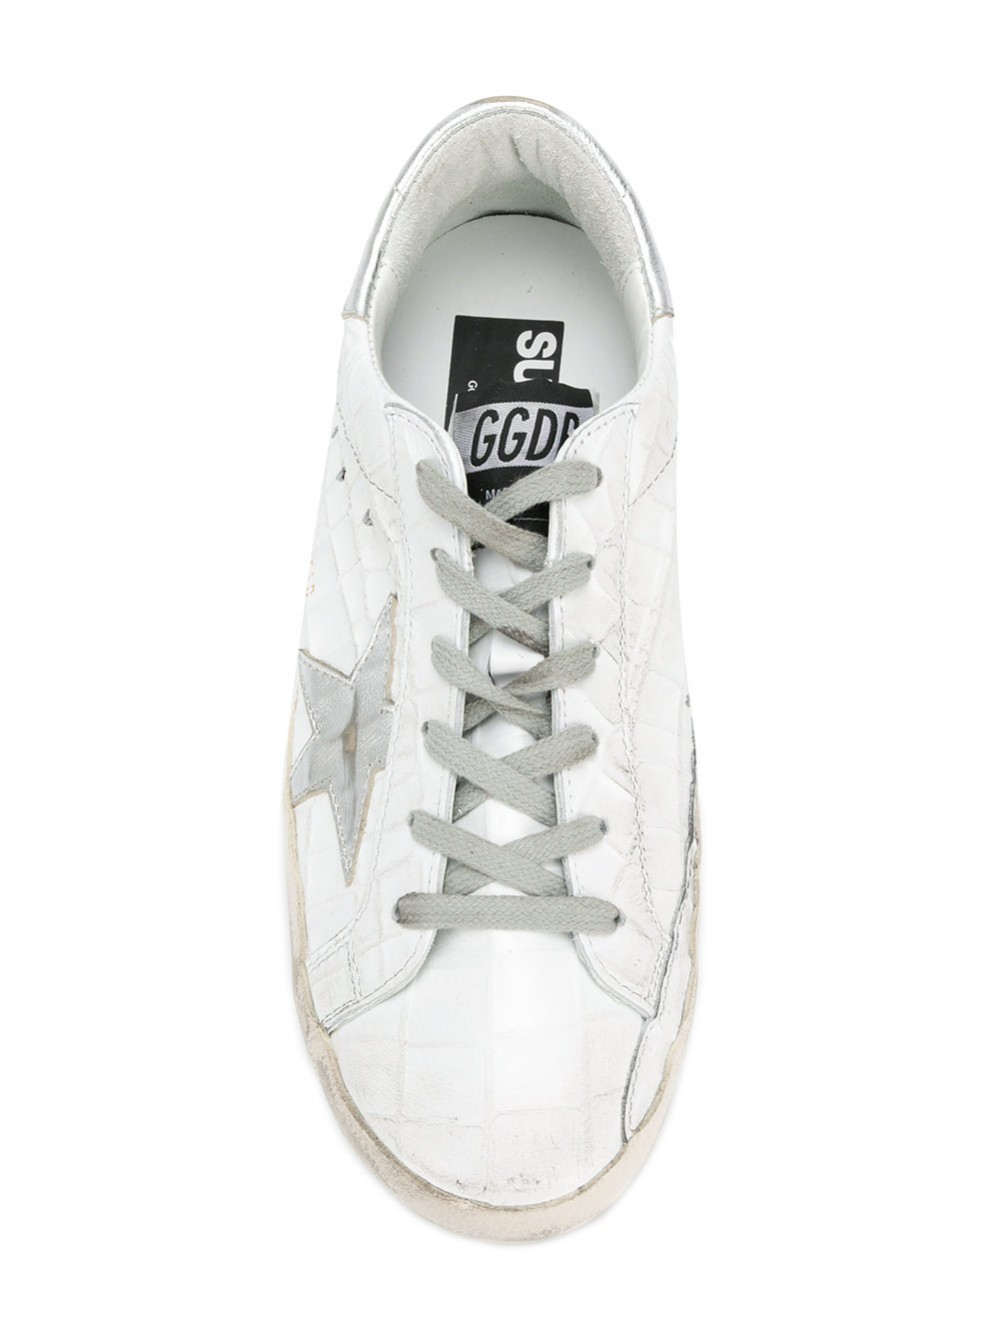 Golden Goose Deluxe Brand Superstar Distressed Sneakers